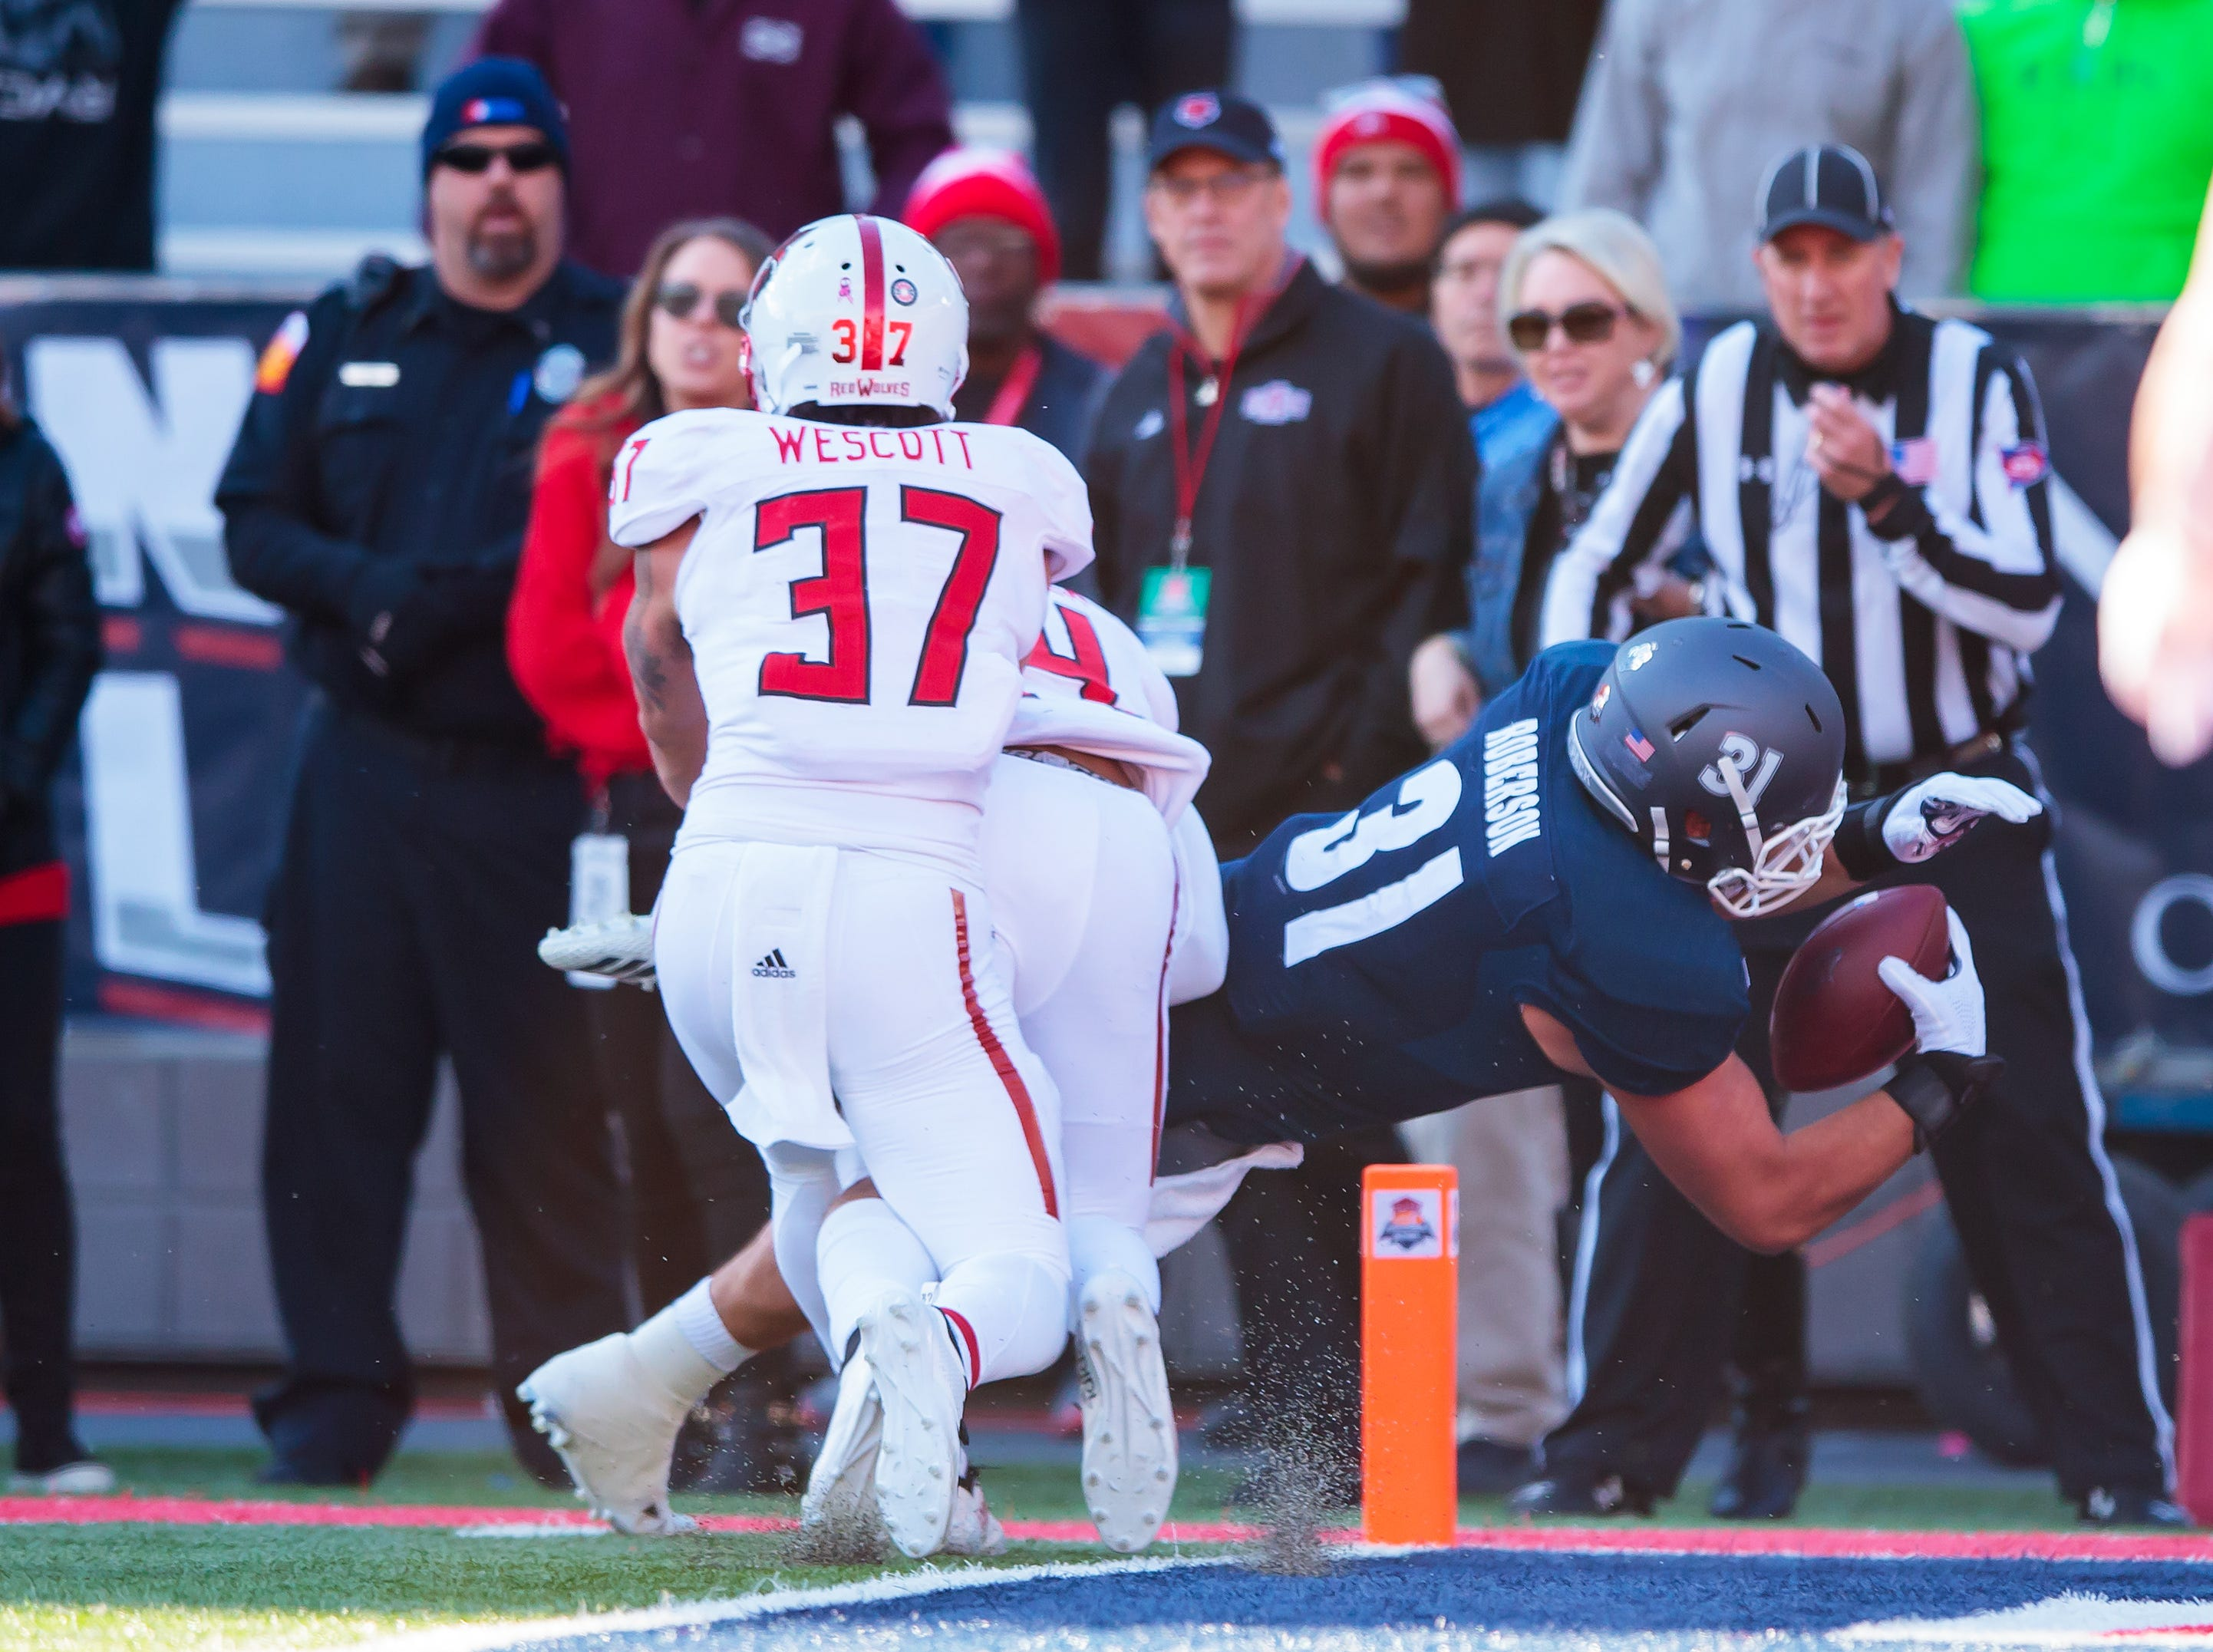 Nevada Wolf Pack tight end Reagan Roberson (31) dives into the end zone to score the winning touchdown in overtime against the Arkansas State Red Wolves in the Arizona Bowl.